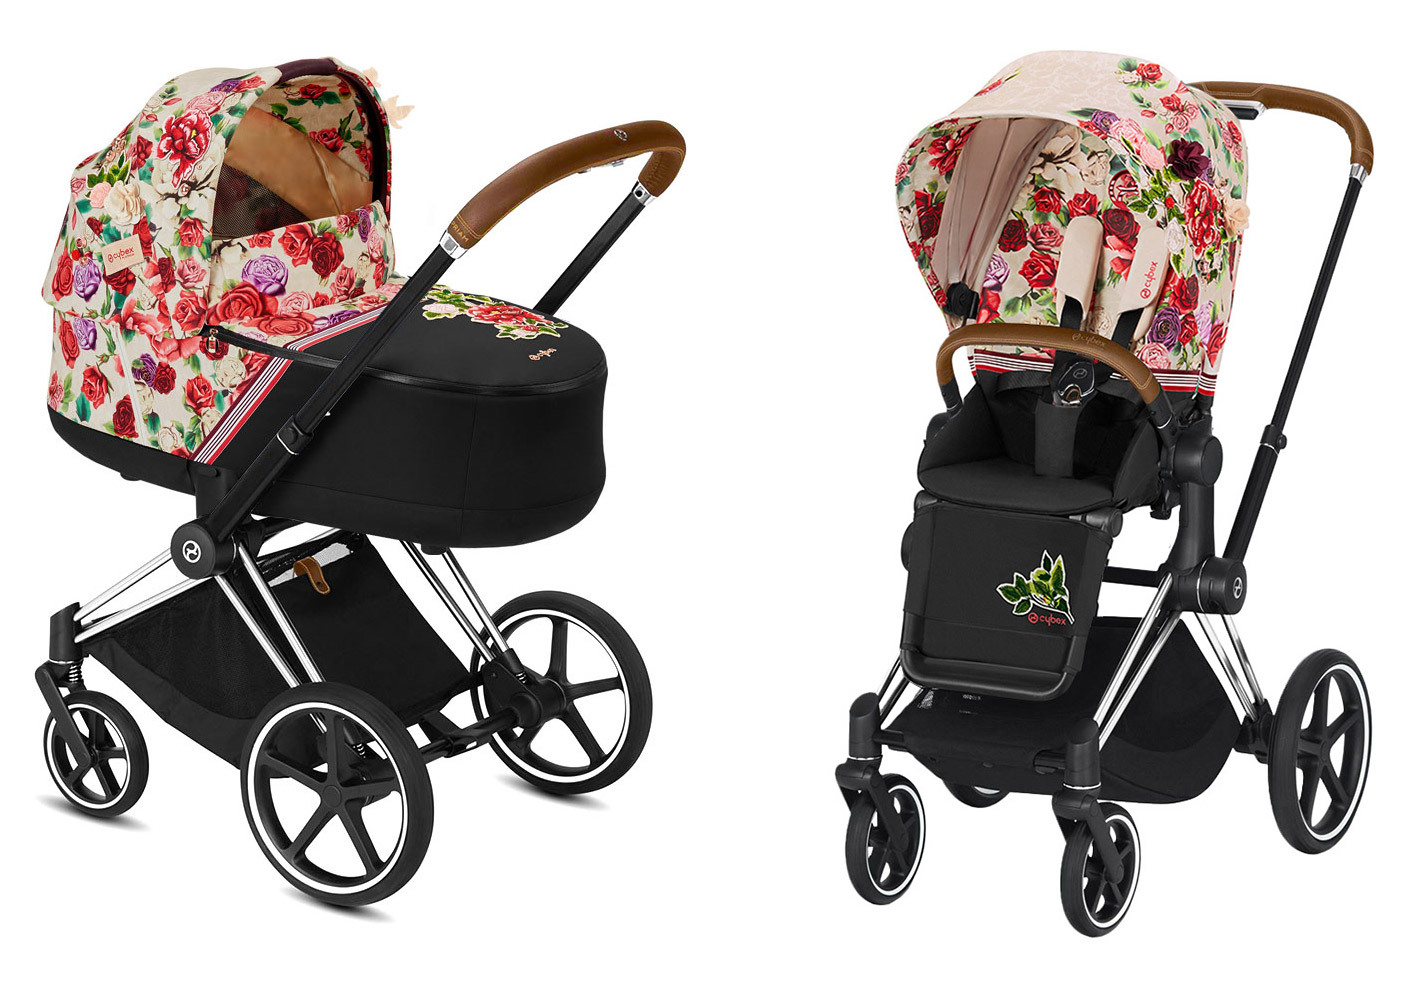 Цвета Cybex Priam 2 в 1 Детская коляска Cybex Priam III 2 в 1 FE Spring Blossom Light шасси Chrome cybex-priam-iii-2-in-1-spring-blossom-light-chrome.jpg